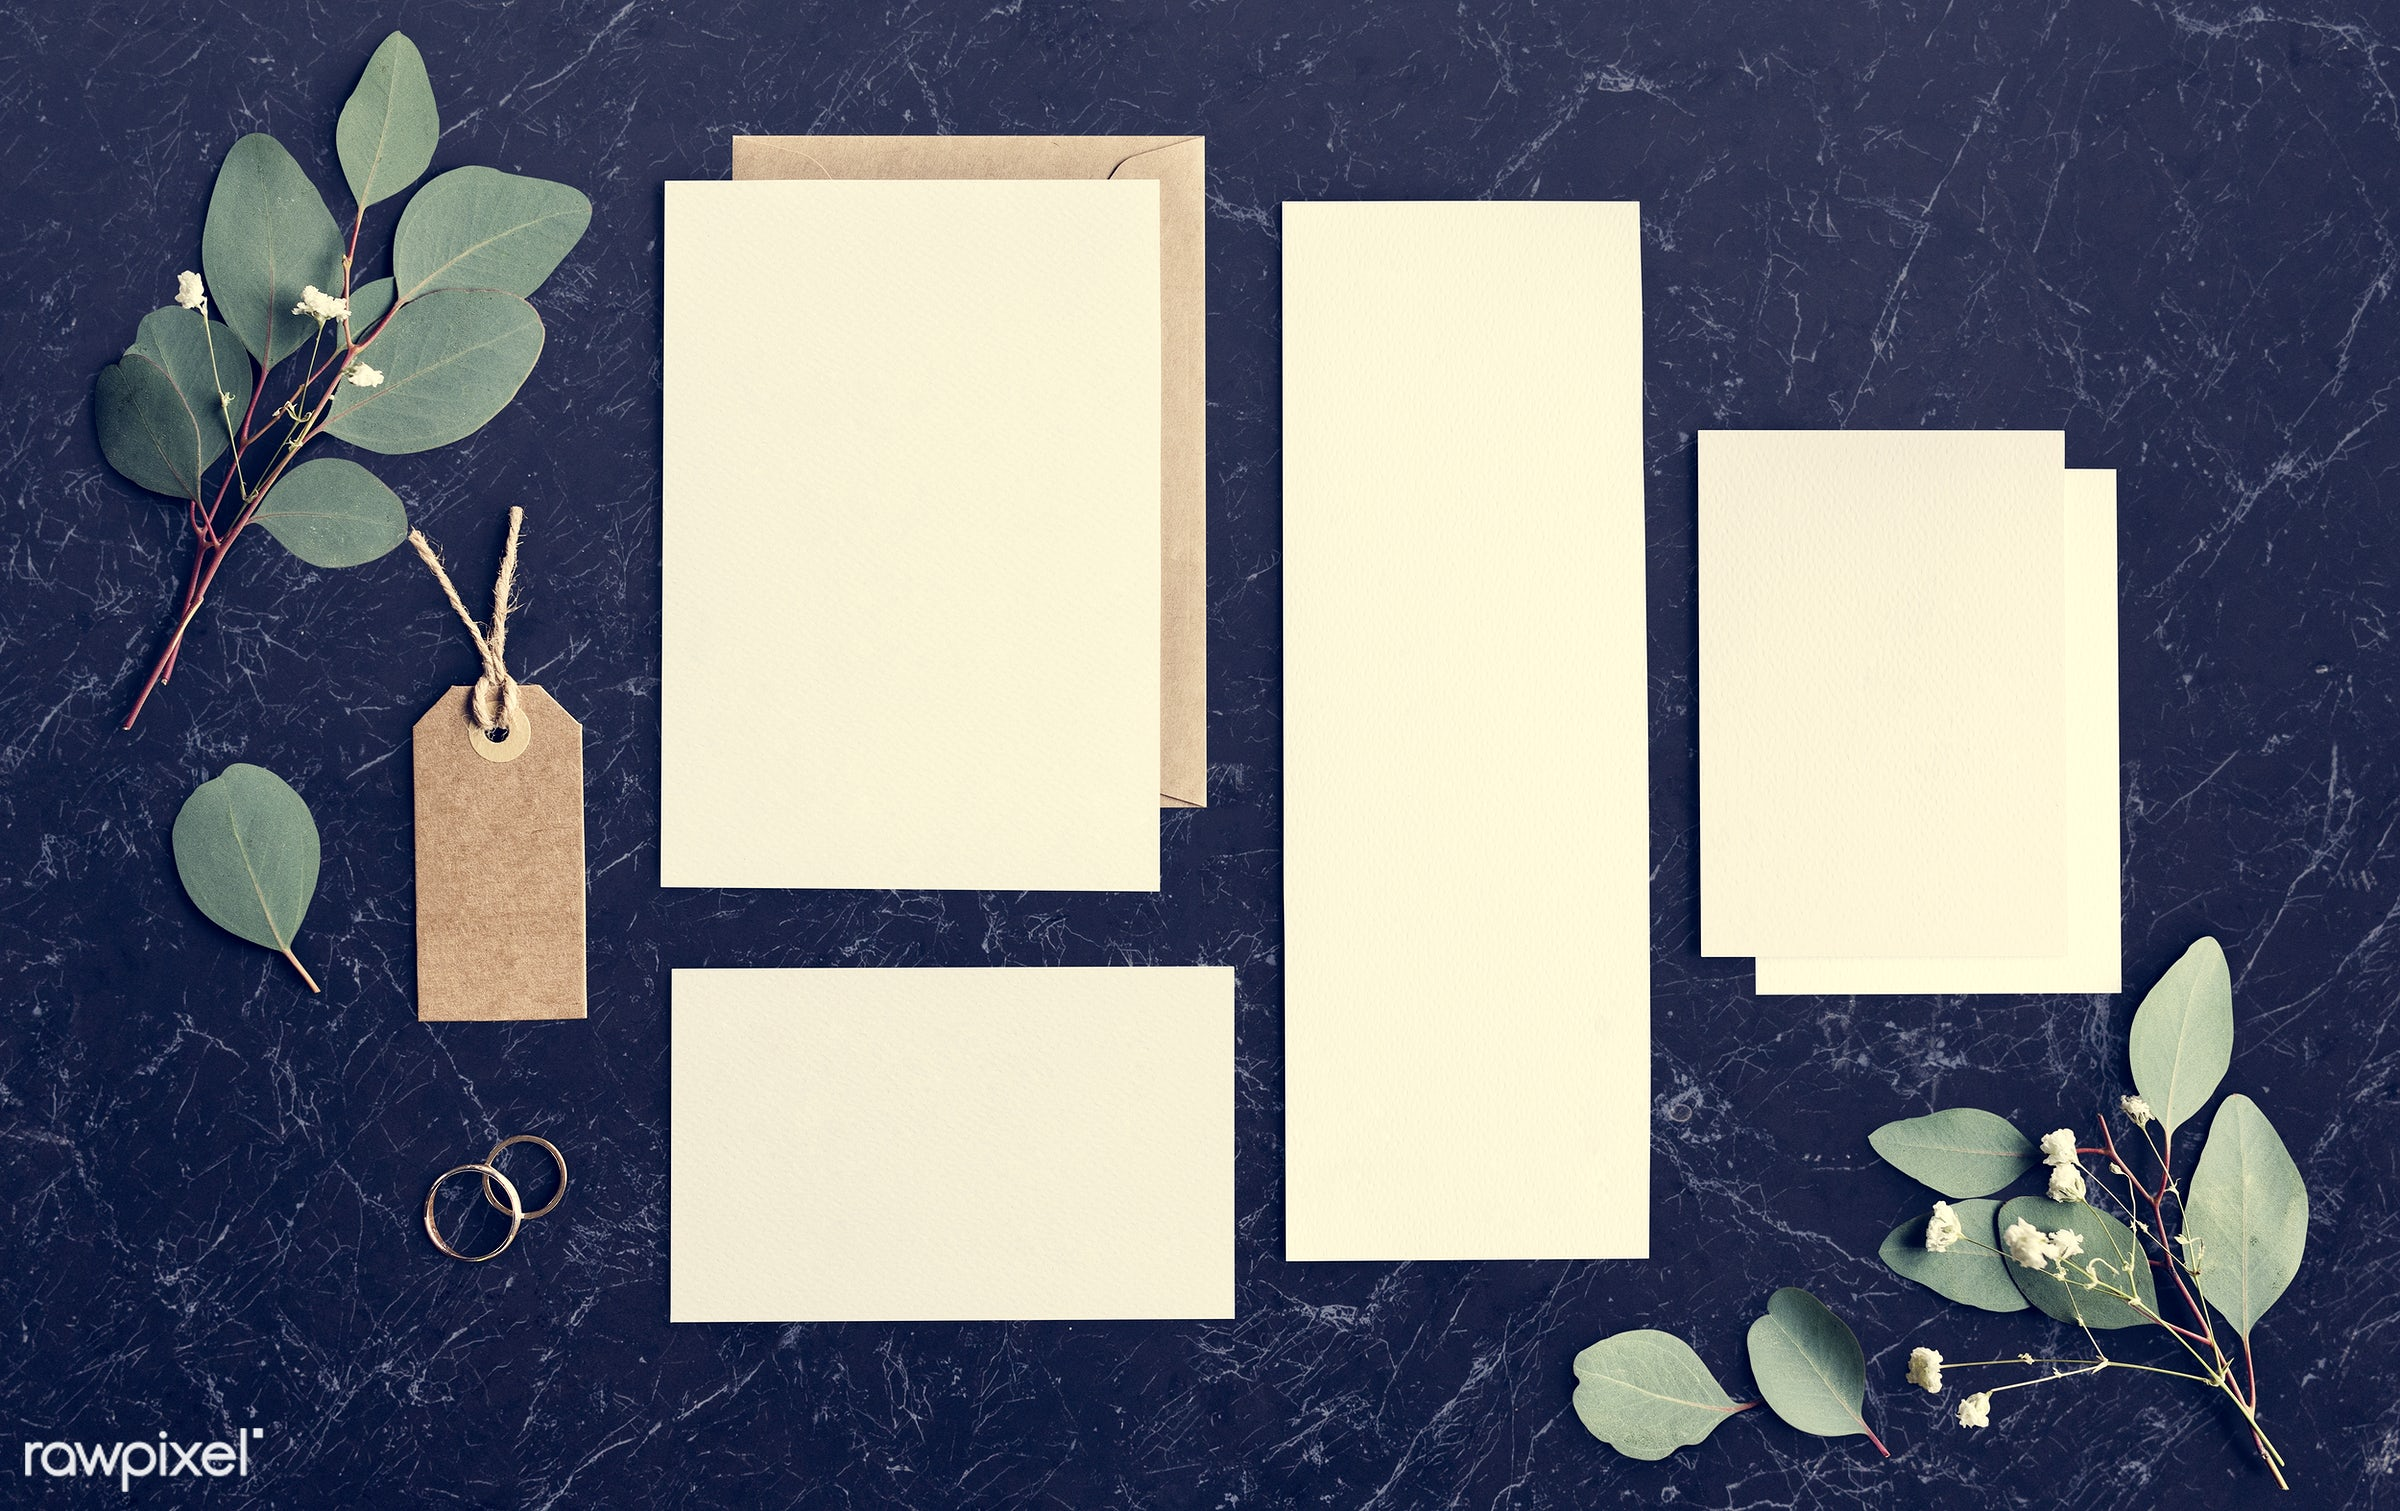 white papers, plant, nobody, marble, copy space, tag, paper, show, mockup, desk, leaves, nature, communicate, empty, card,...